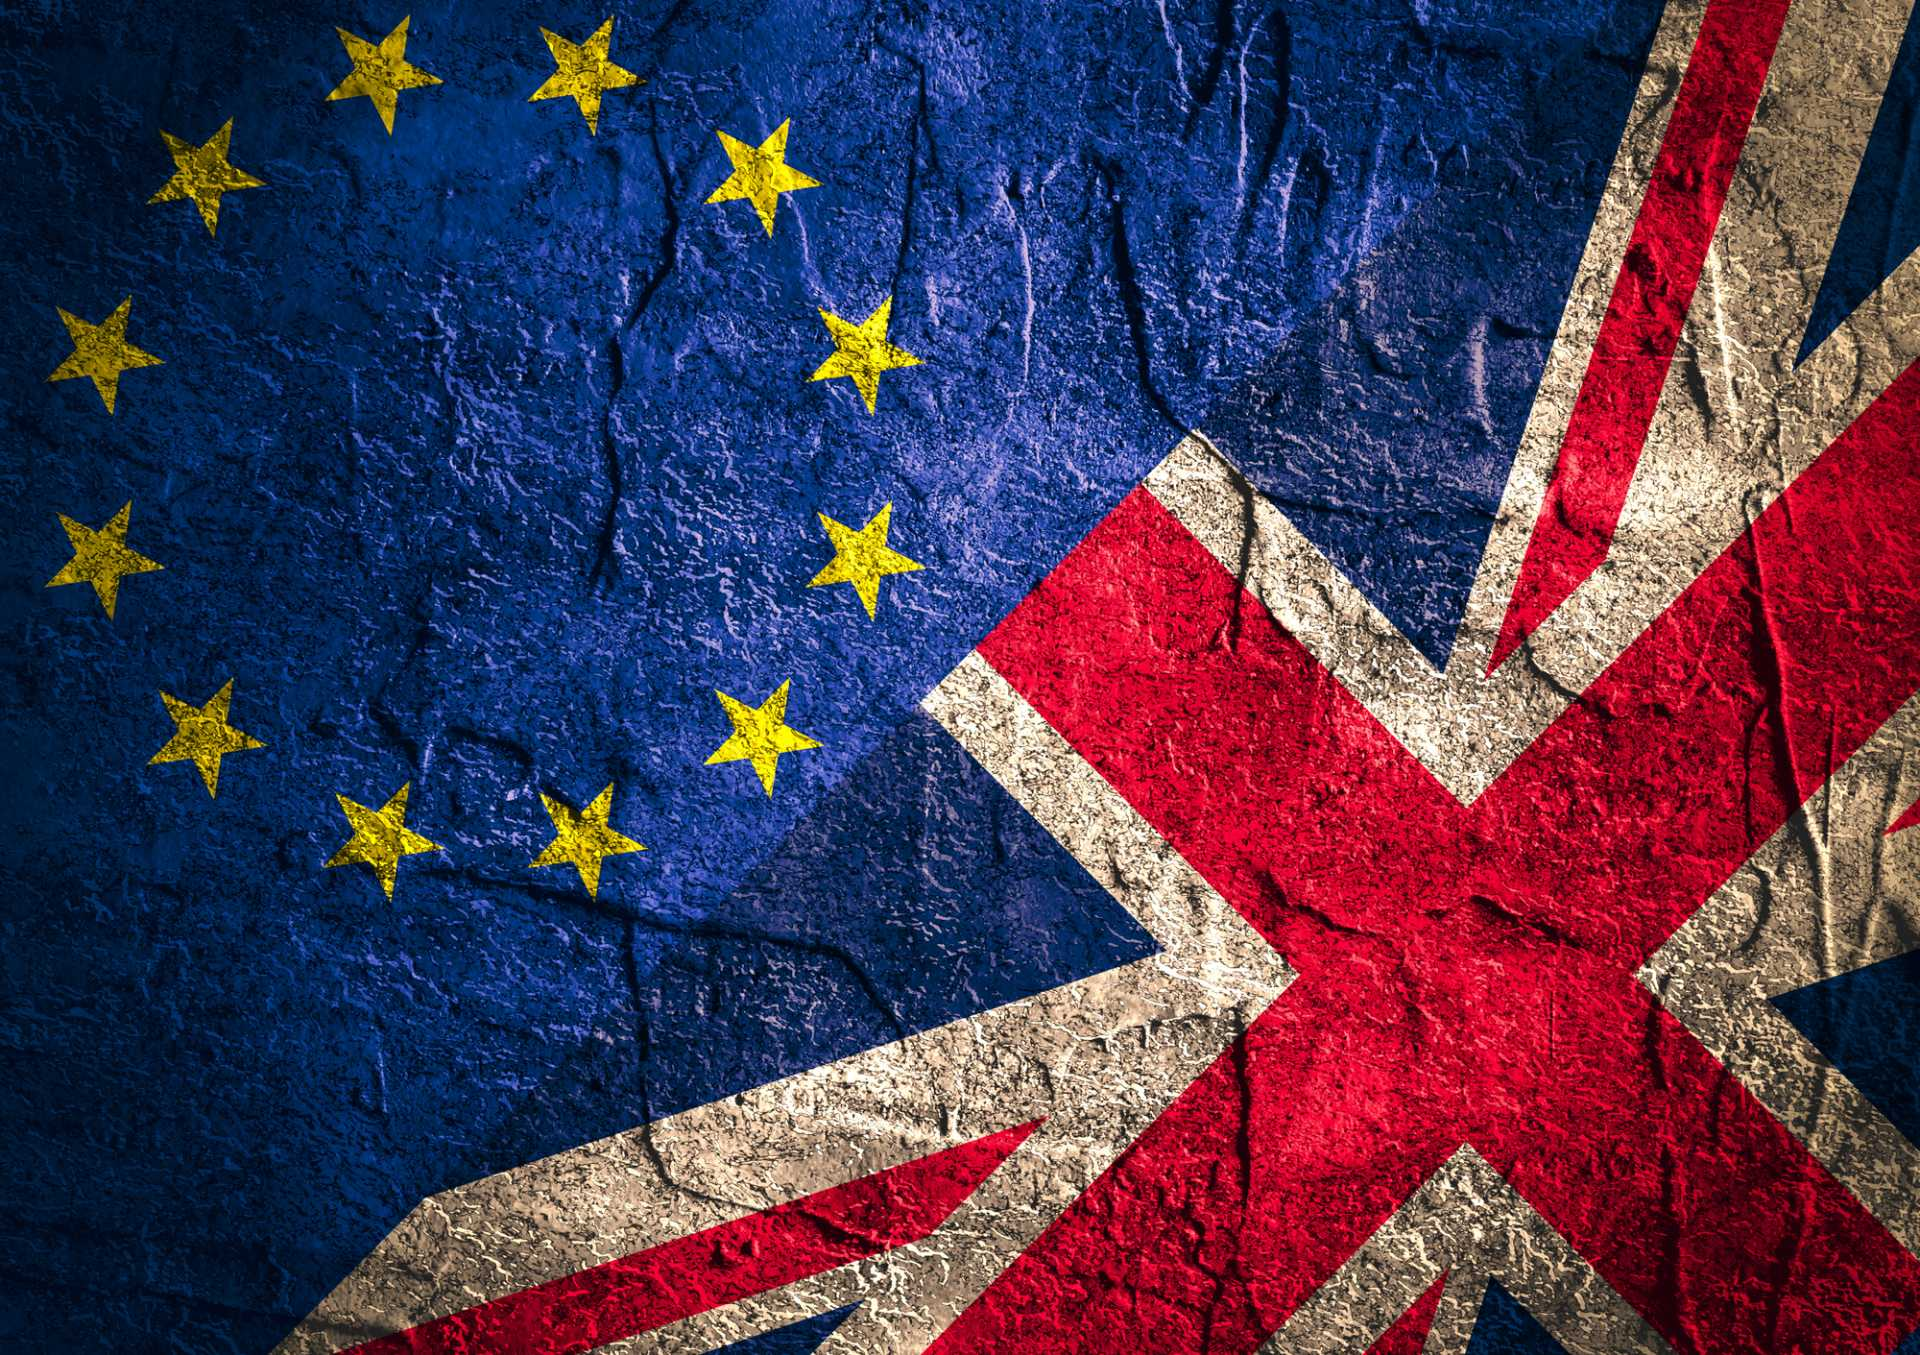 And four in ten (43%) said Brexit would have a positive impact on their business - image courtesy of Depositphotos.